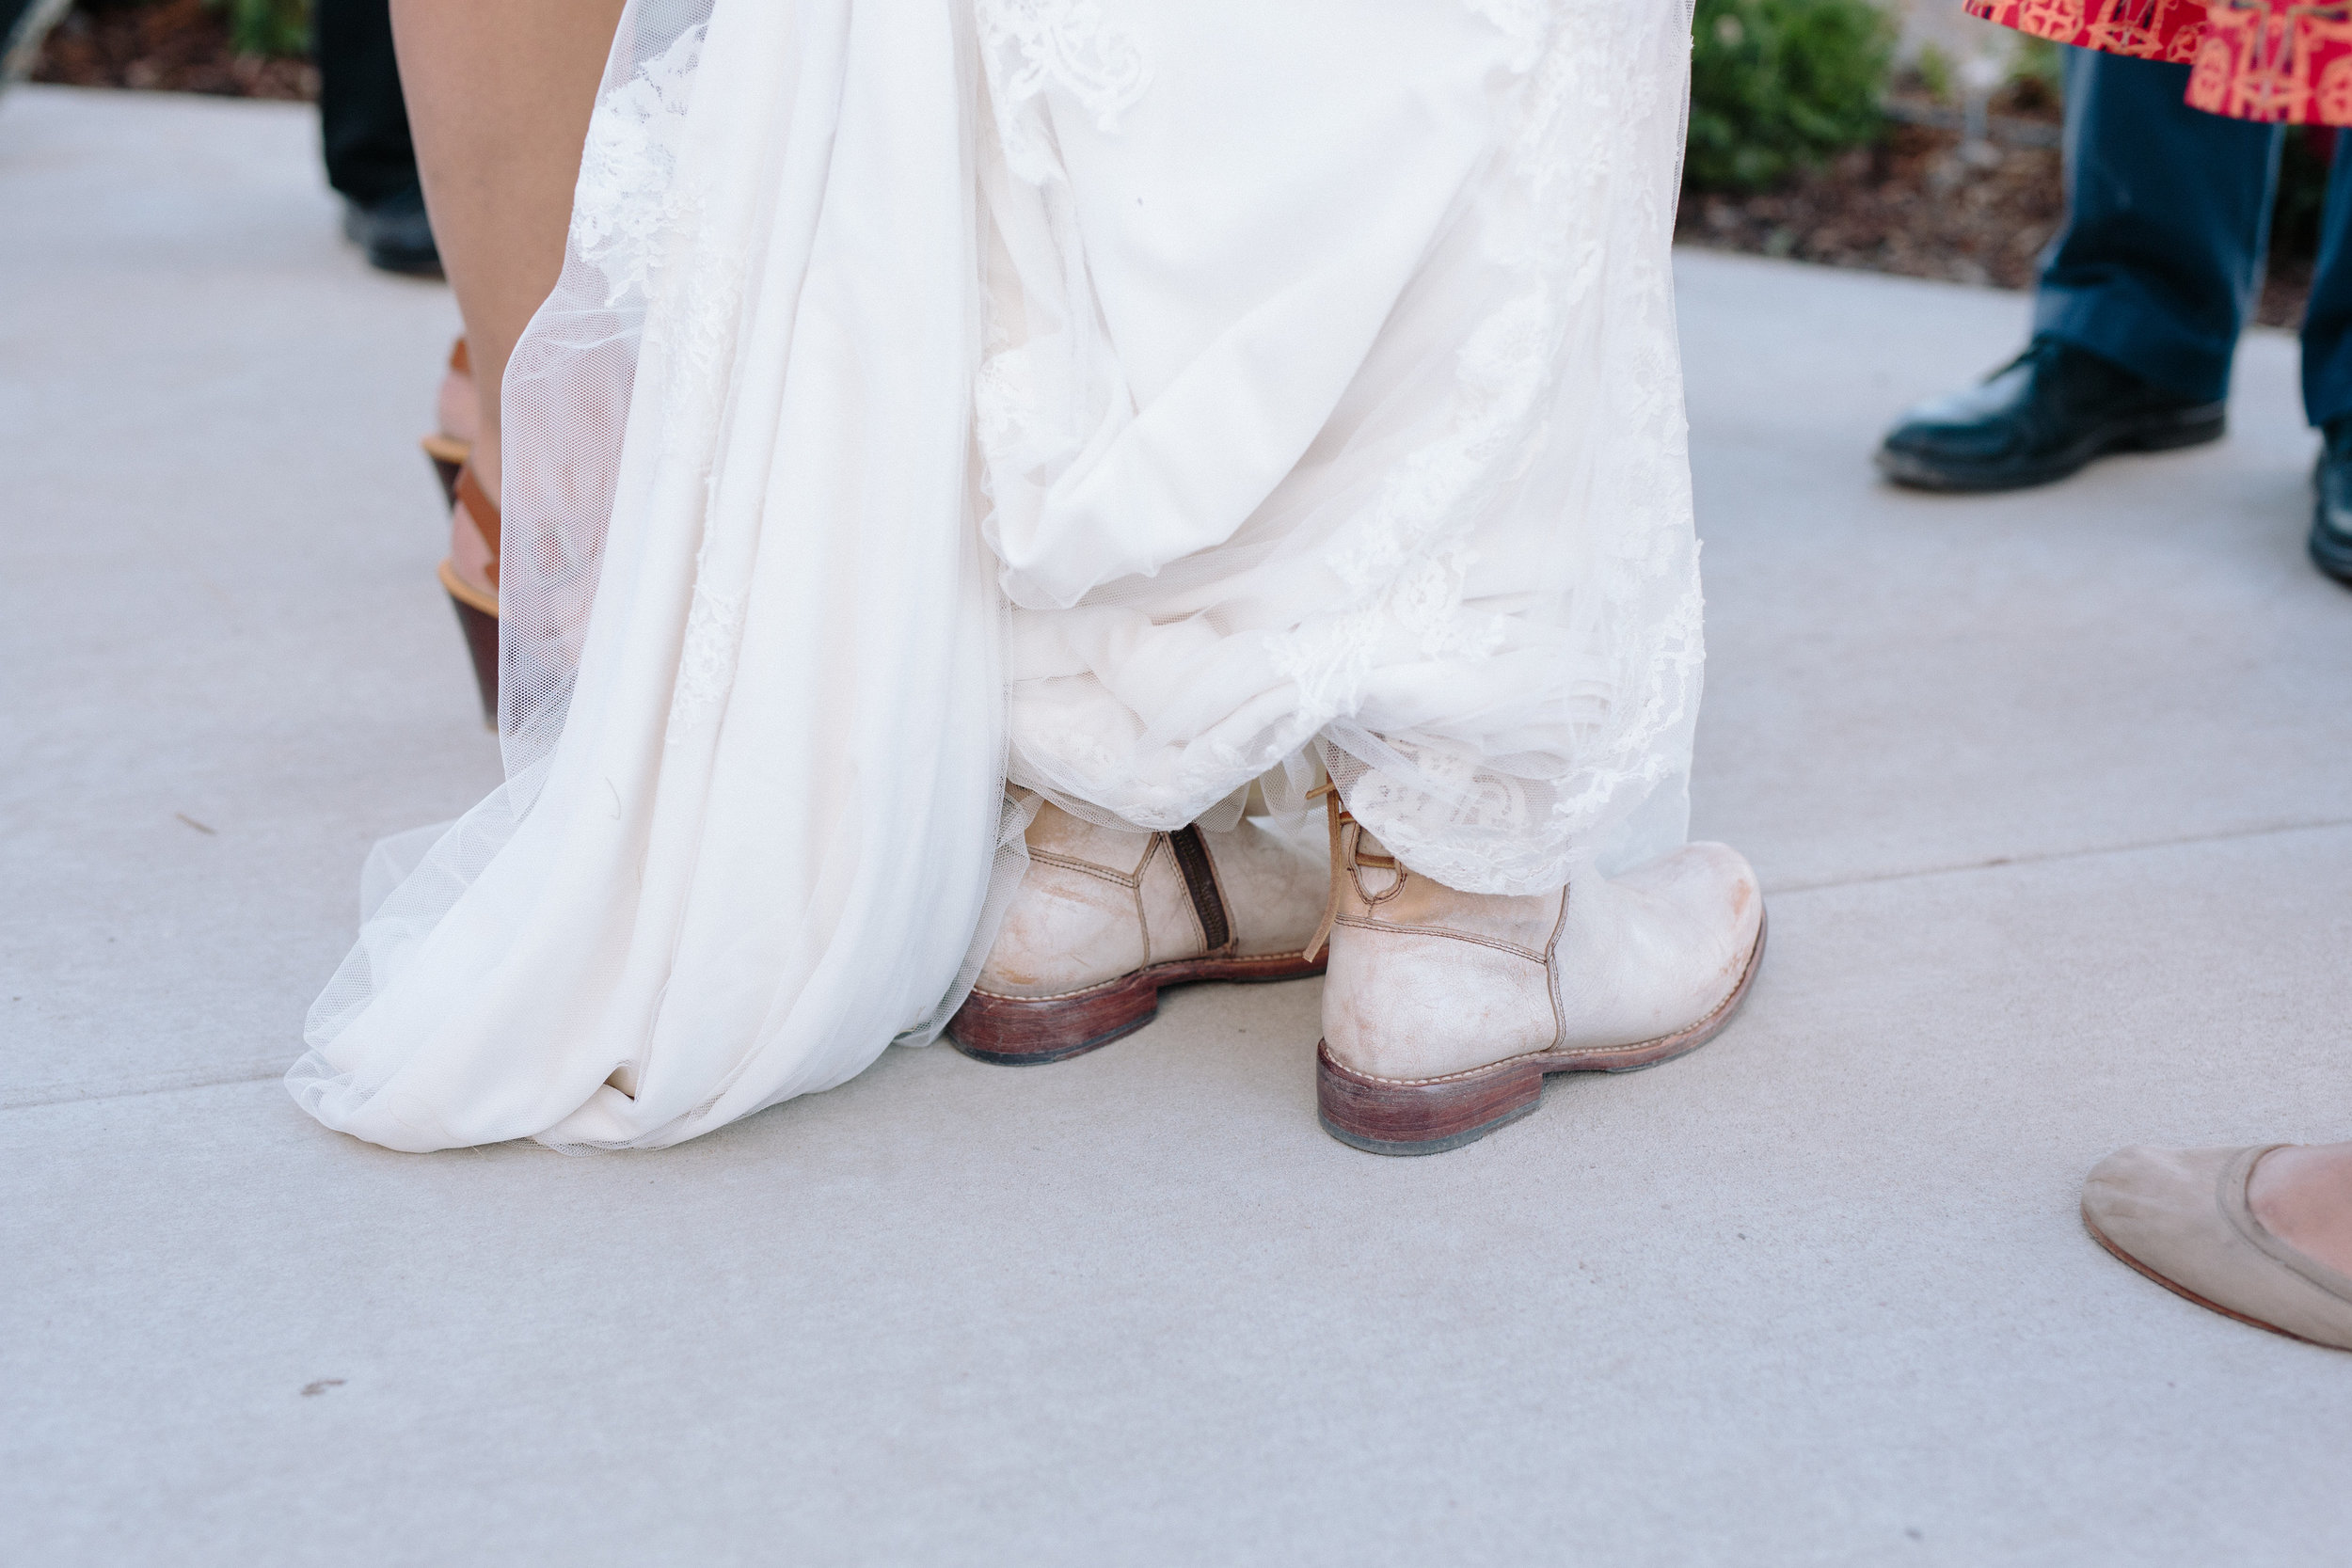 We think boots are the best wedding accessory. Photo by Dina Remi Studios.